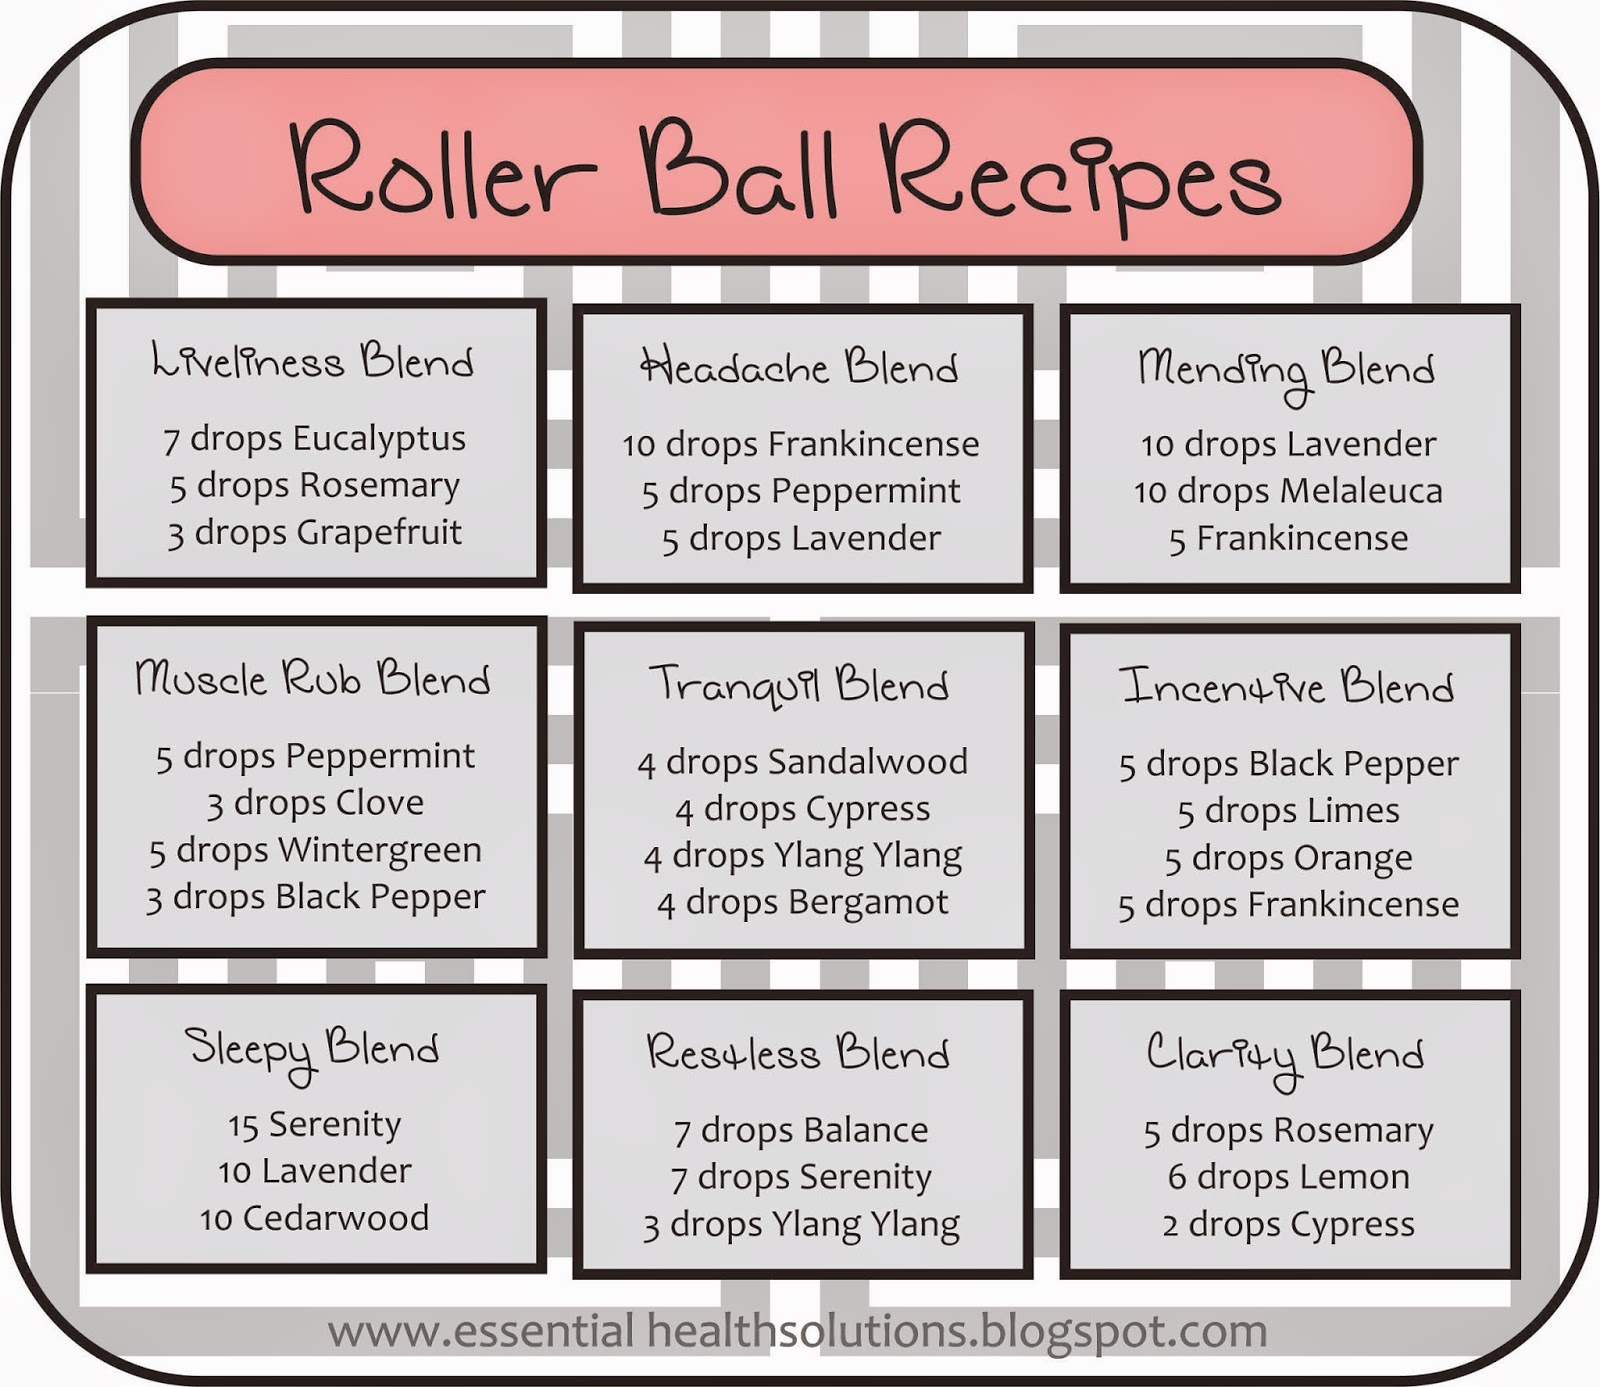 Essential Health Solutions Roller Ball Recipes